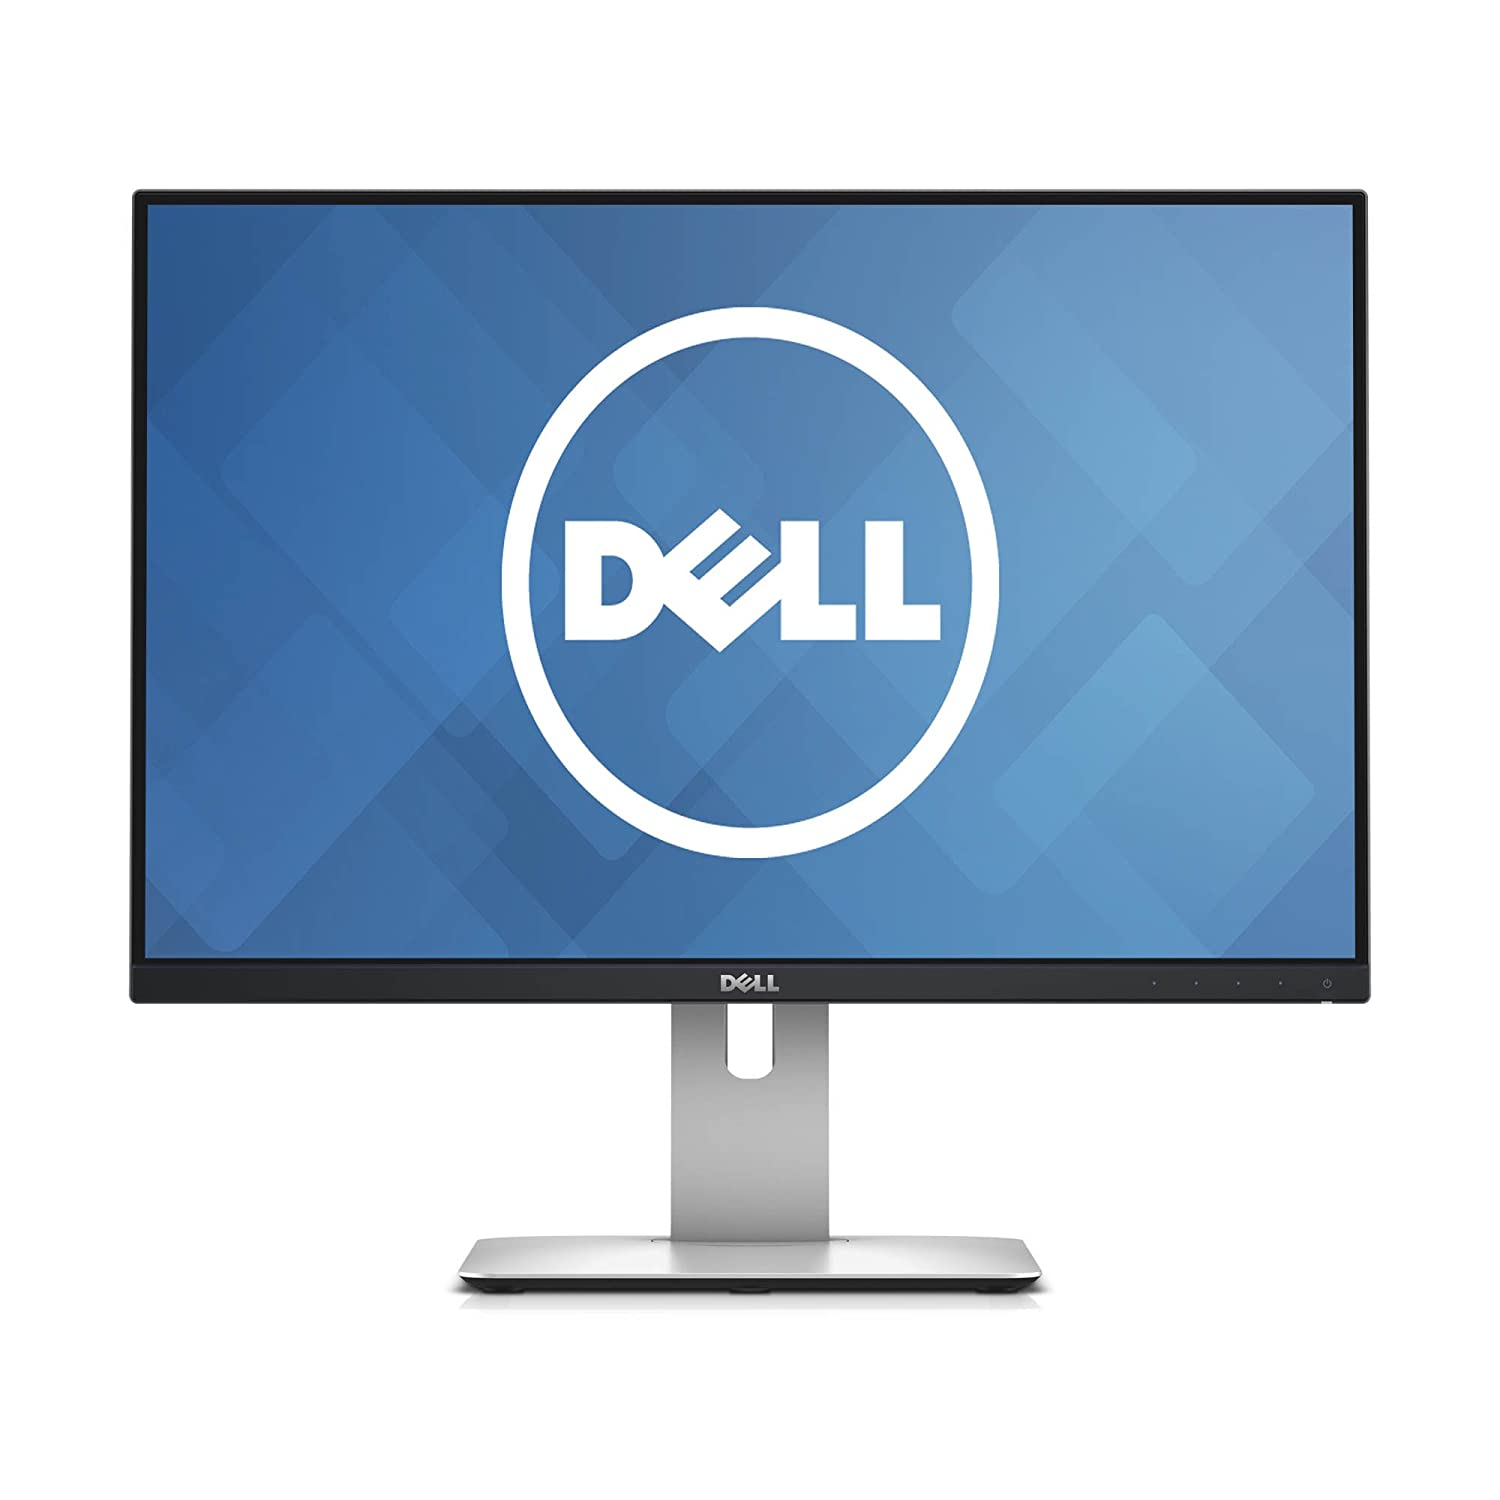 Dell U2415 24-Inch 1920 x 1200 LED Monitor